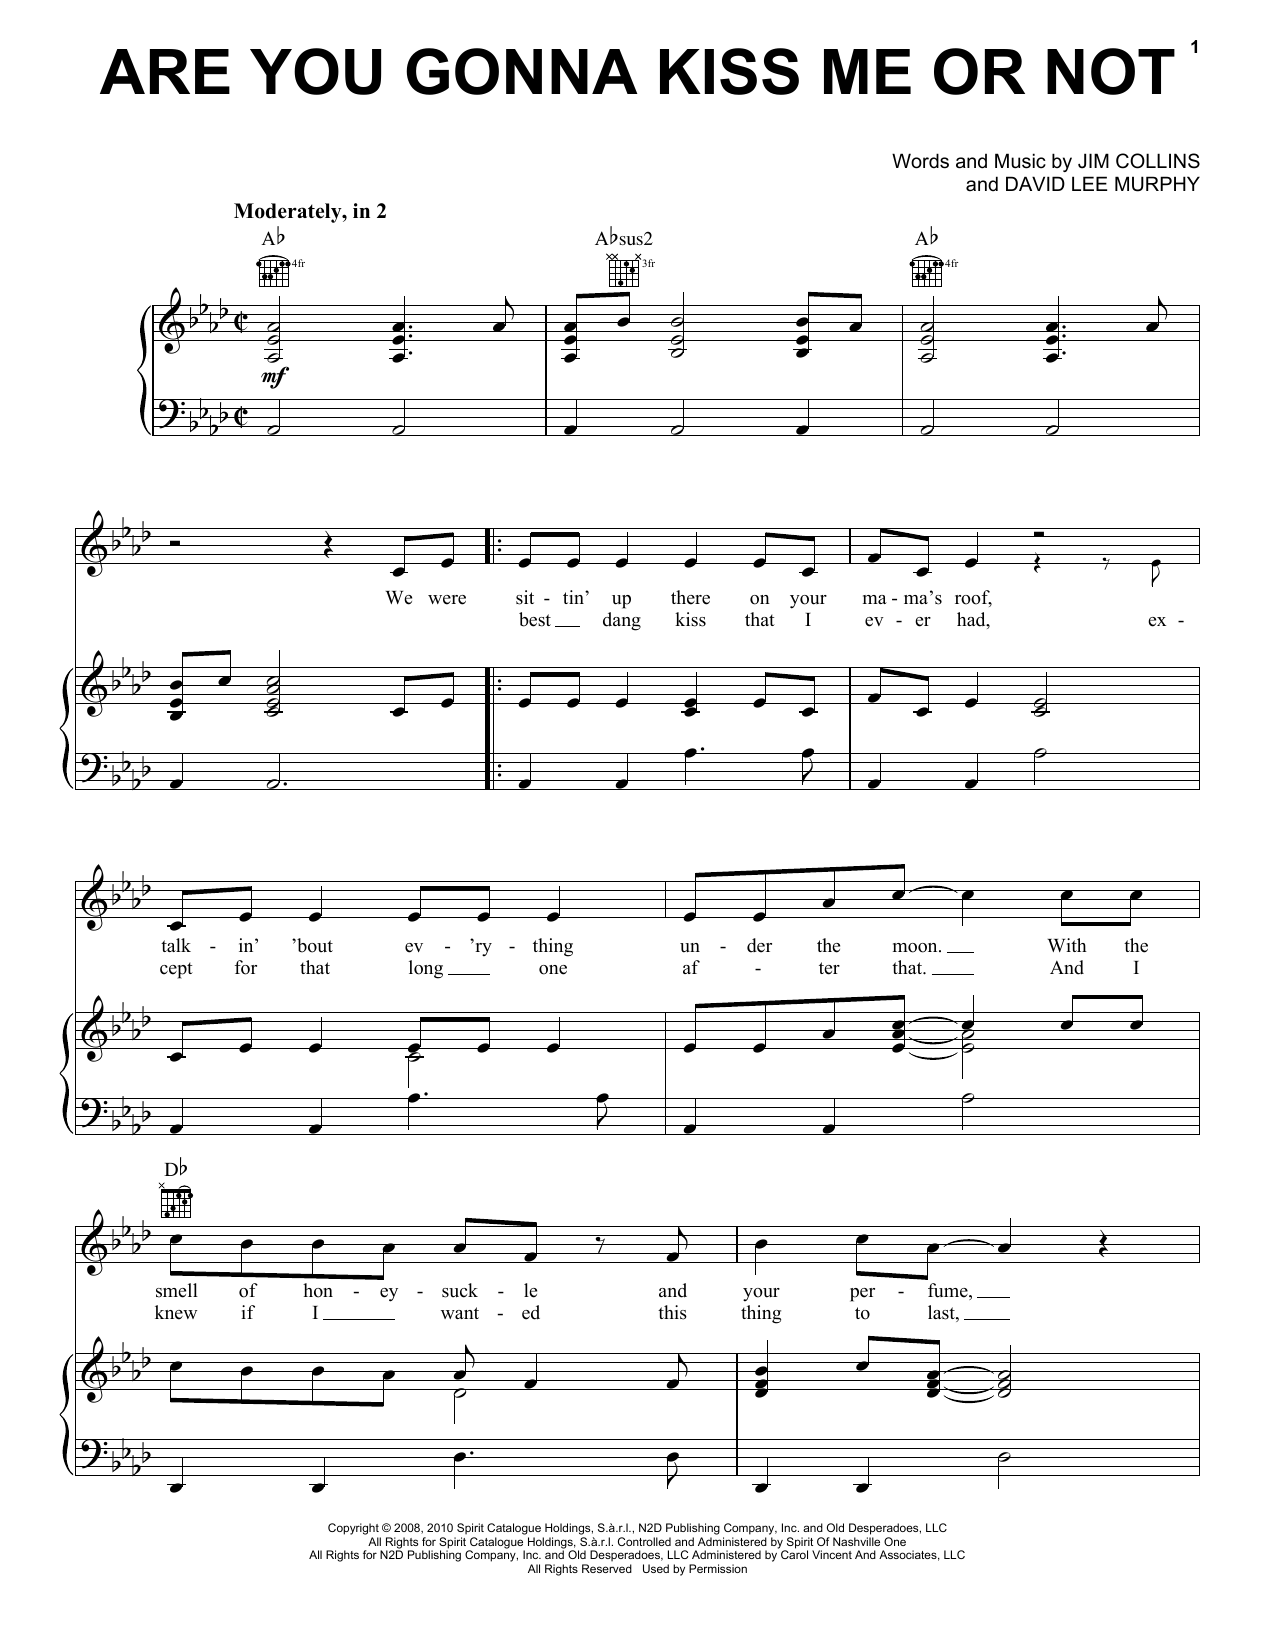 Are You Gonna Kiss Me Or Not Sheet Music